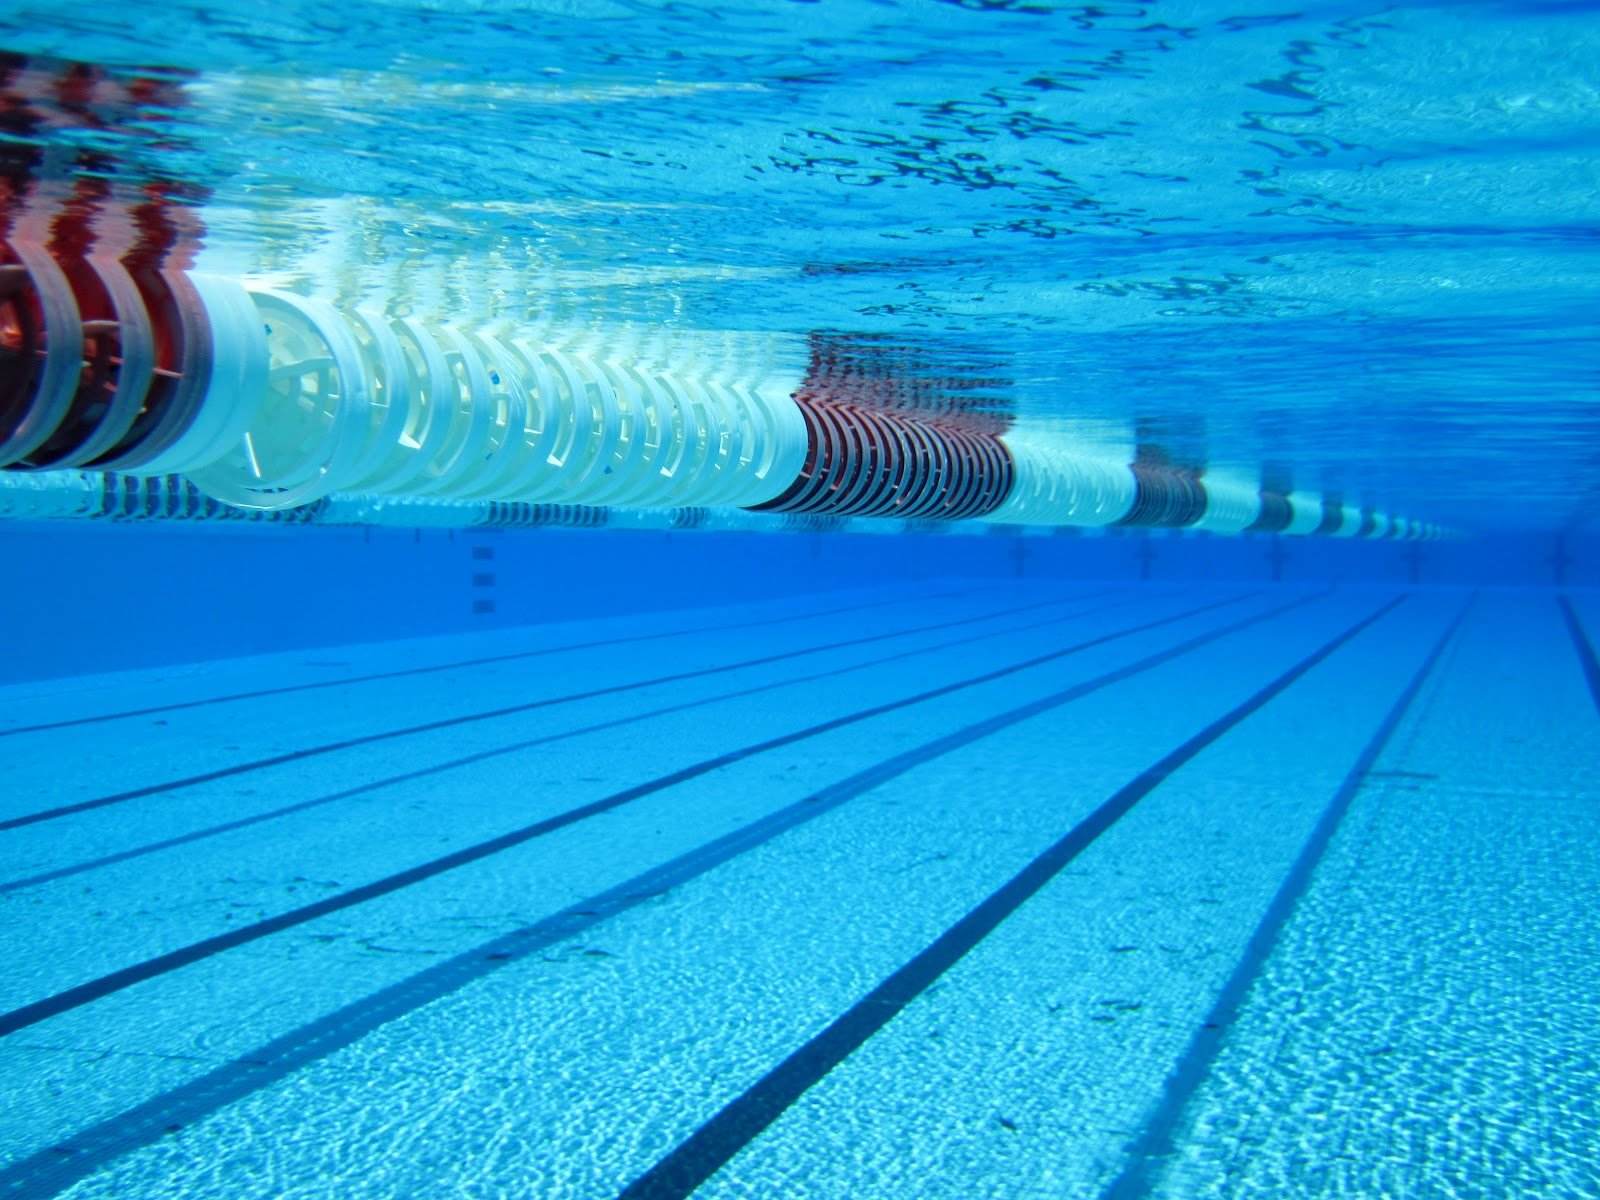 Olympic swimming pool underwater for Swimming images